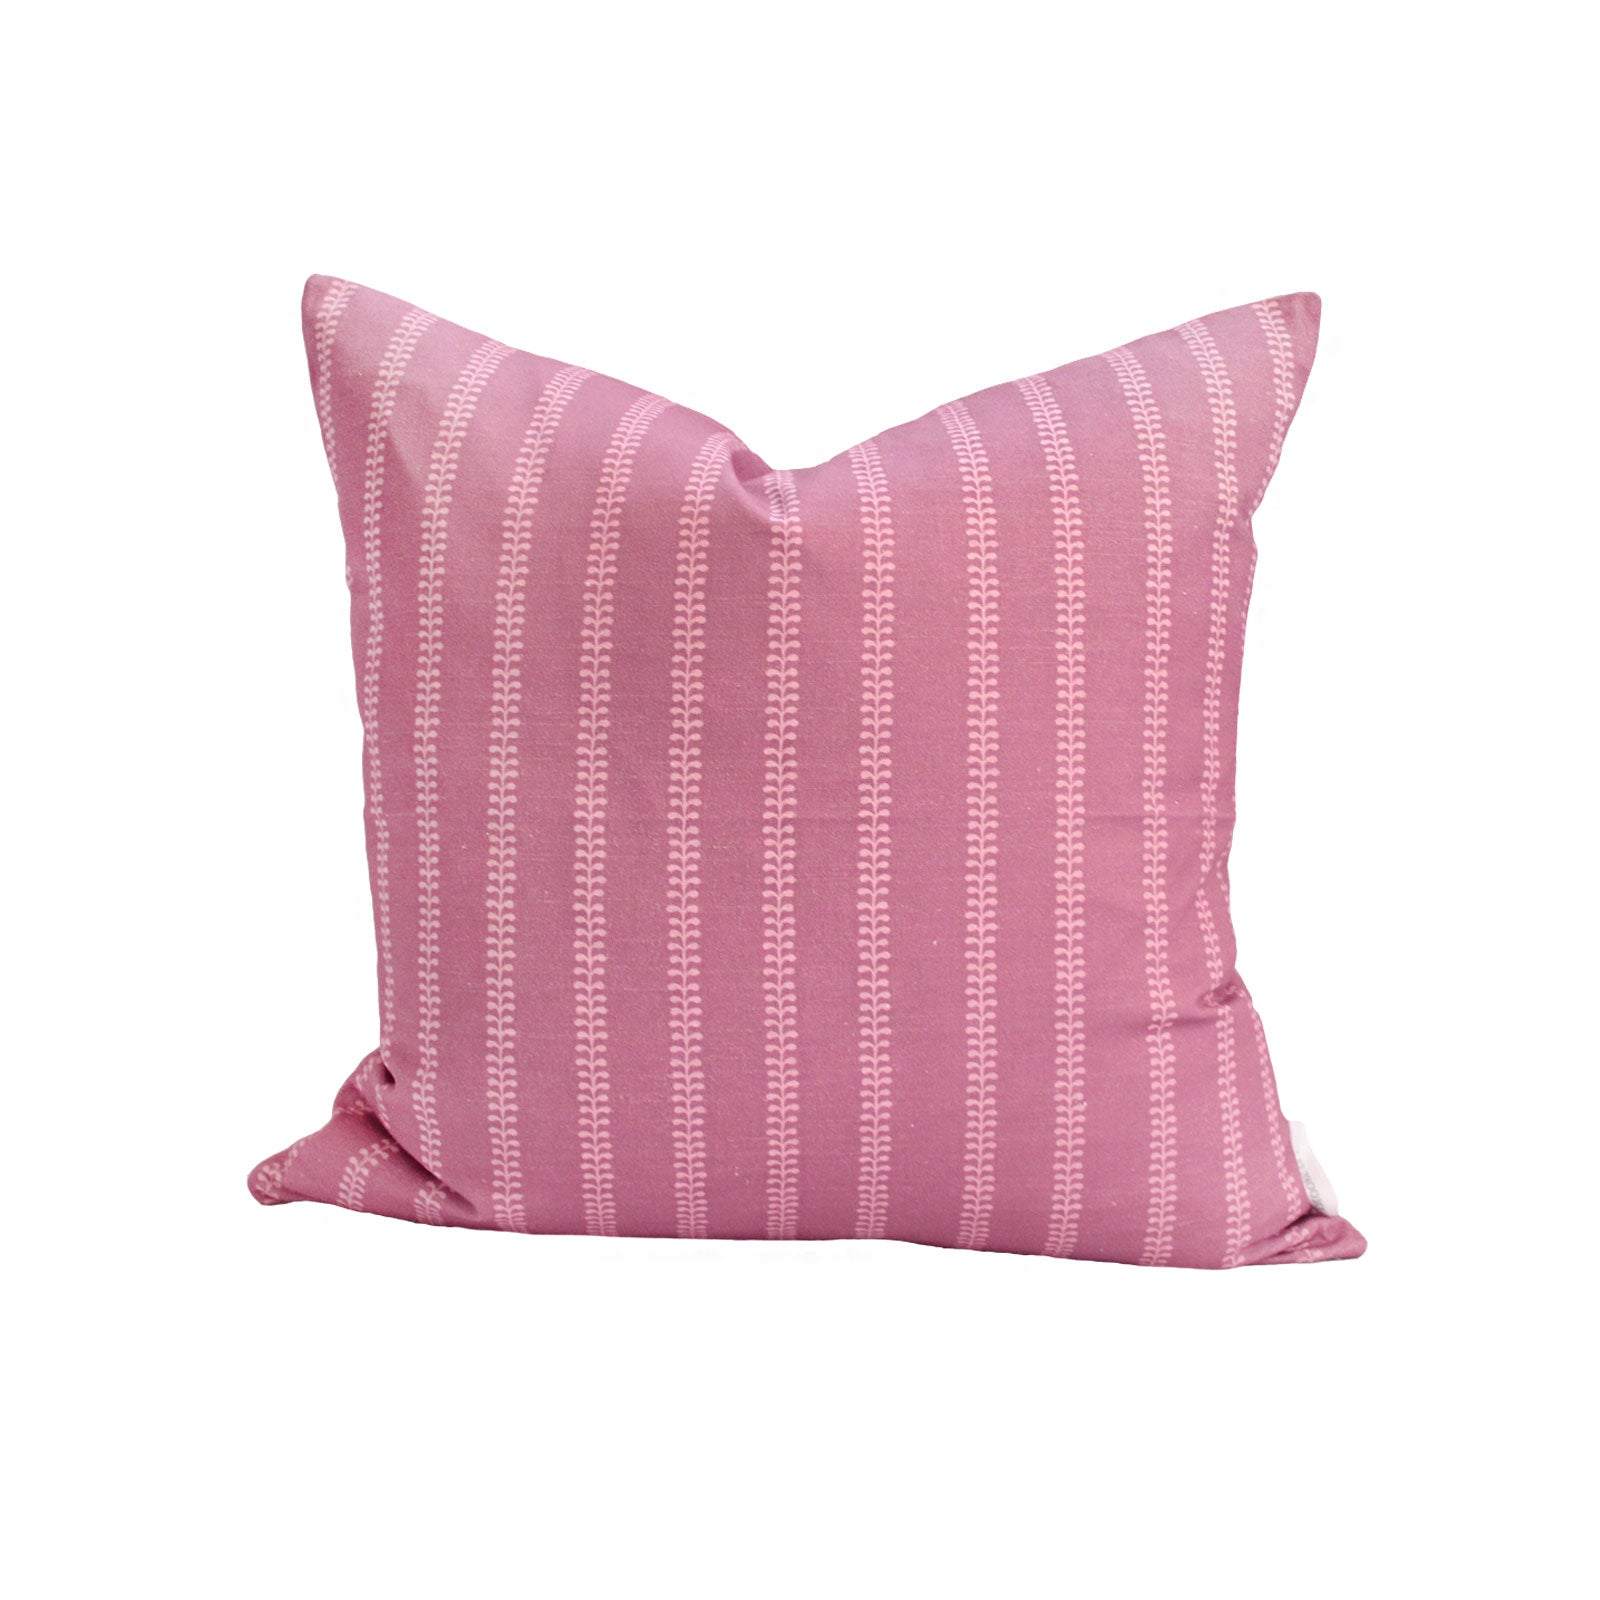 Fern Pillow in Berry